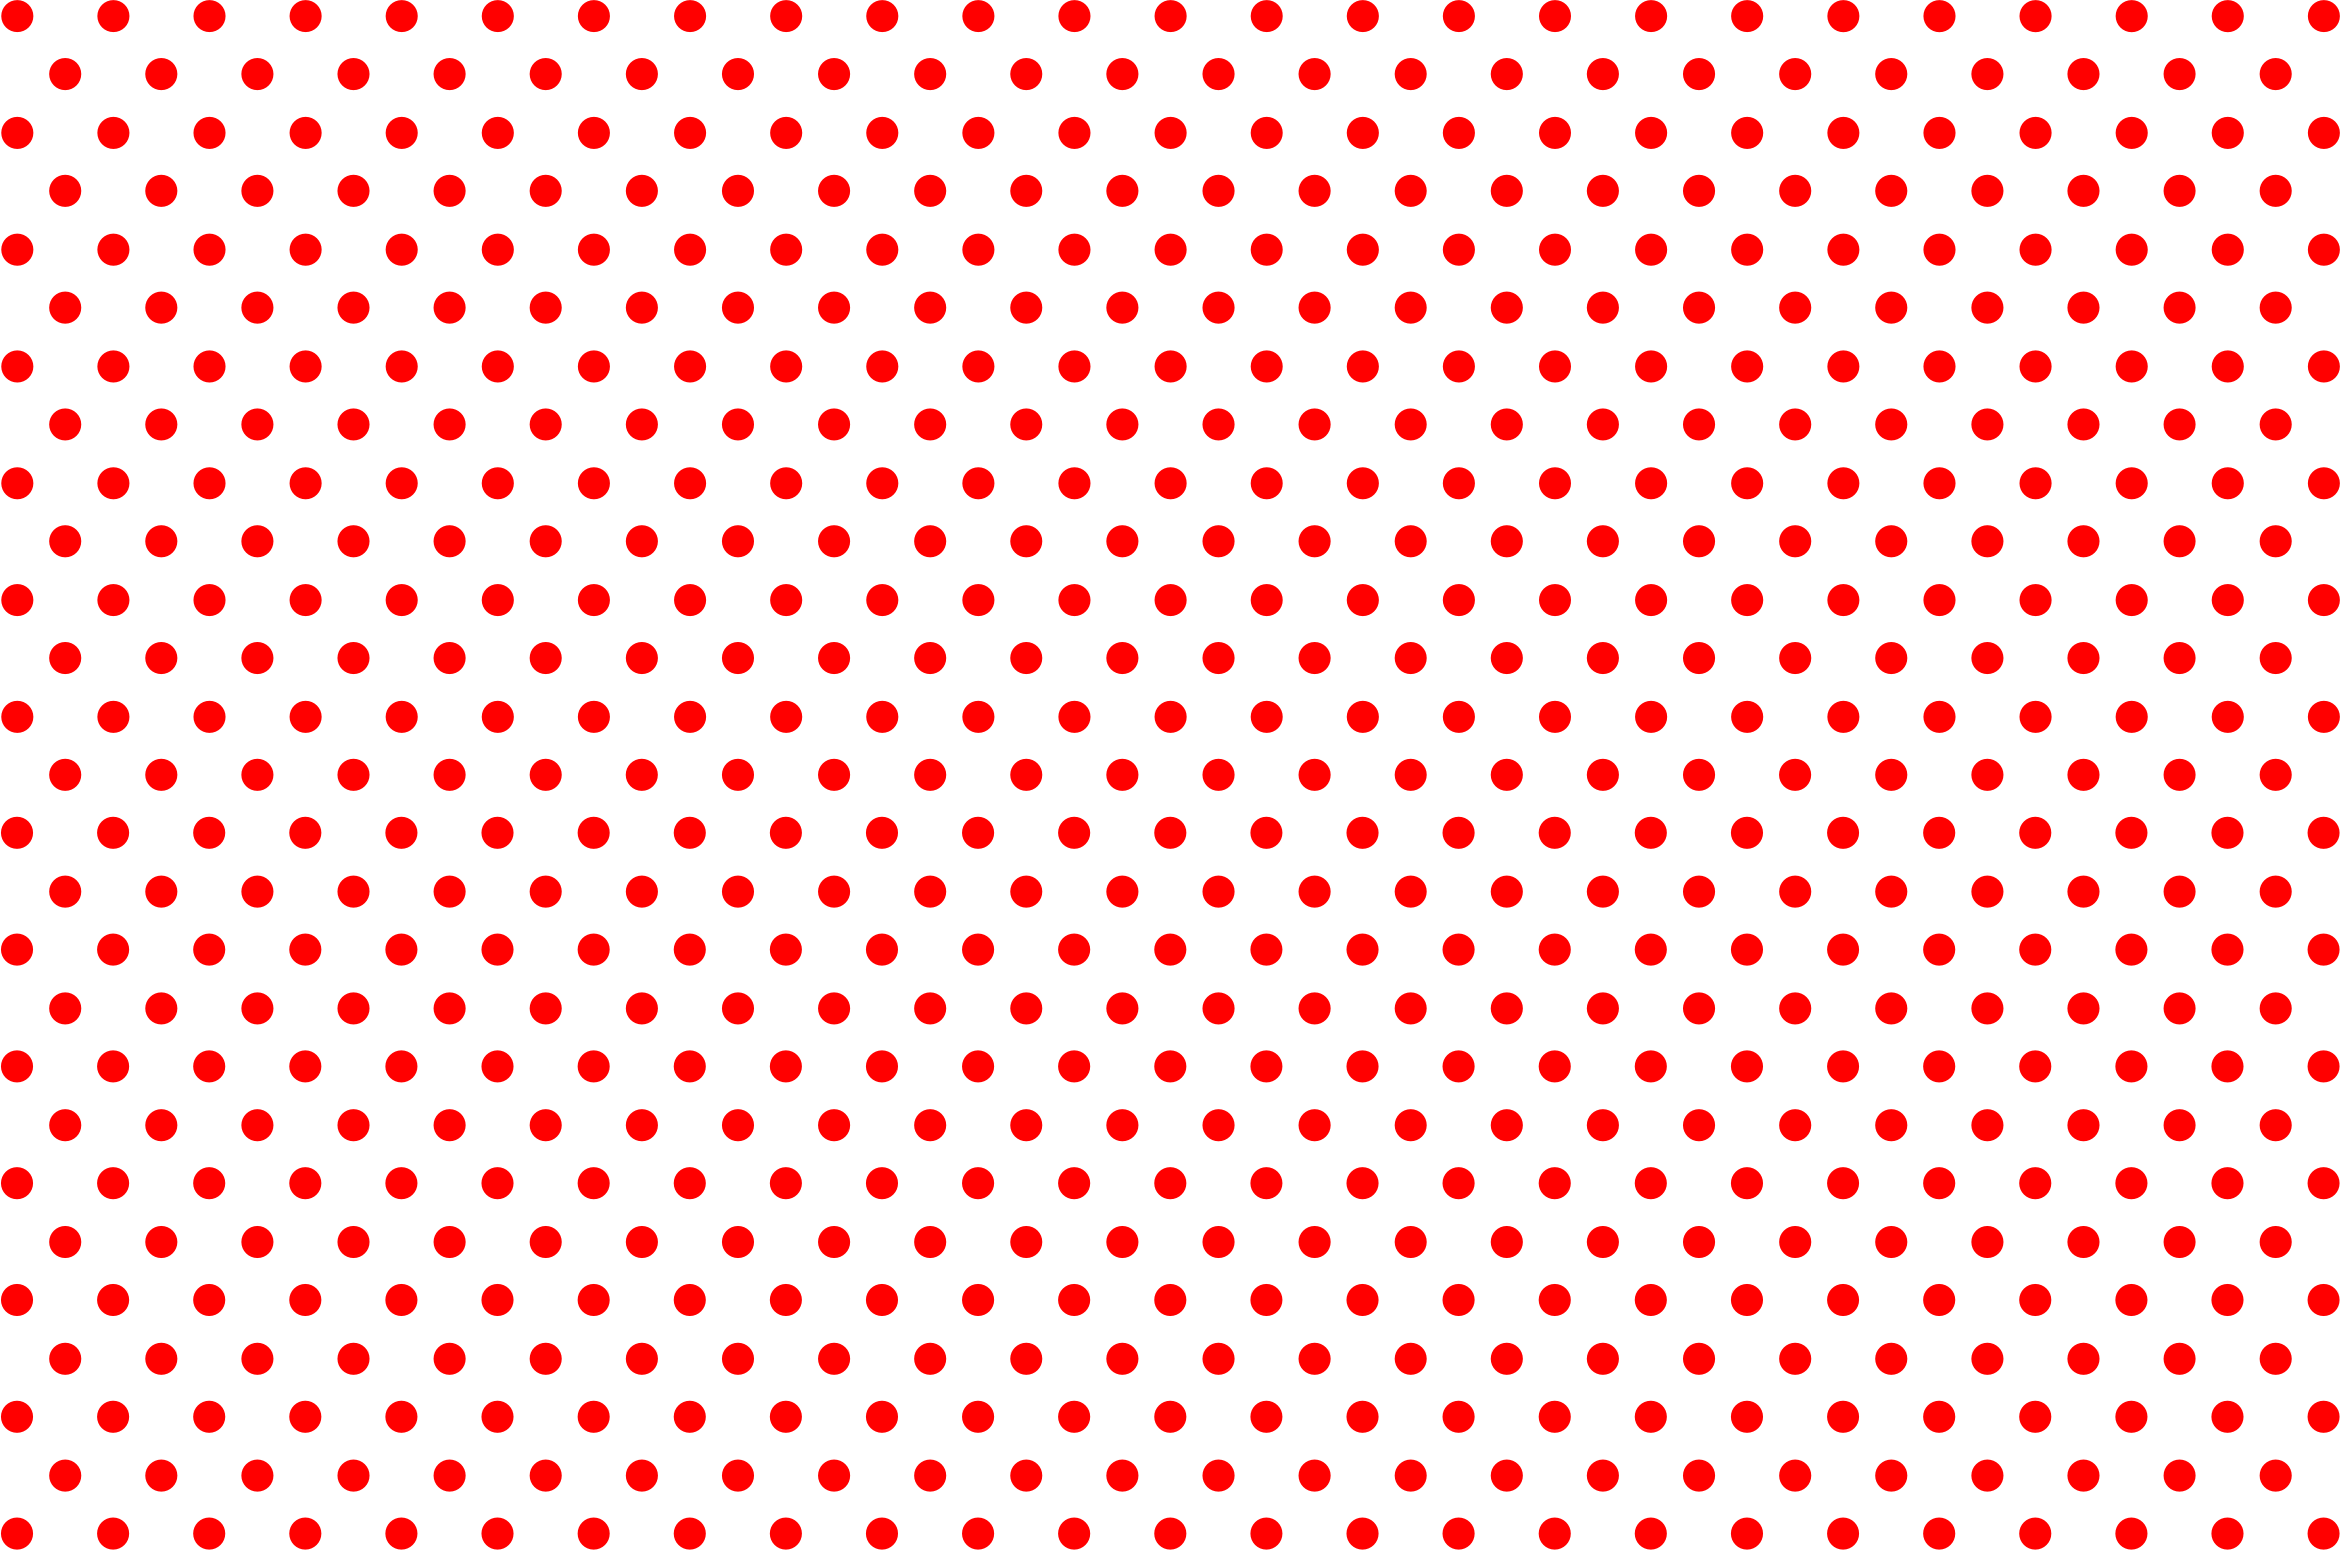 red polka dot wallpaper wallpapersafari checkered border clip art yellow and black red checkered border clip art free